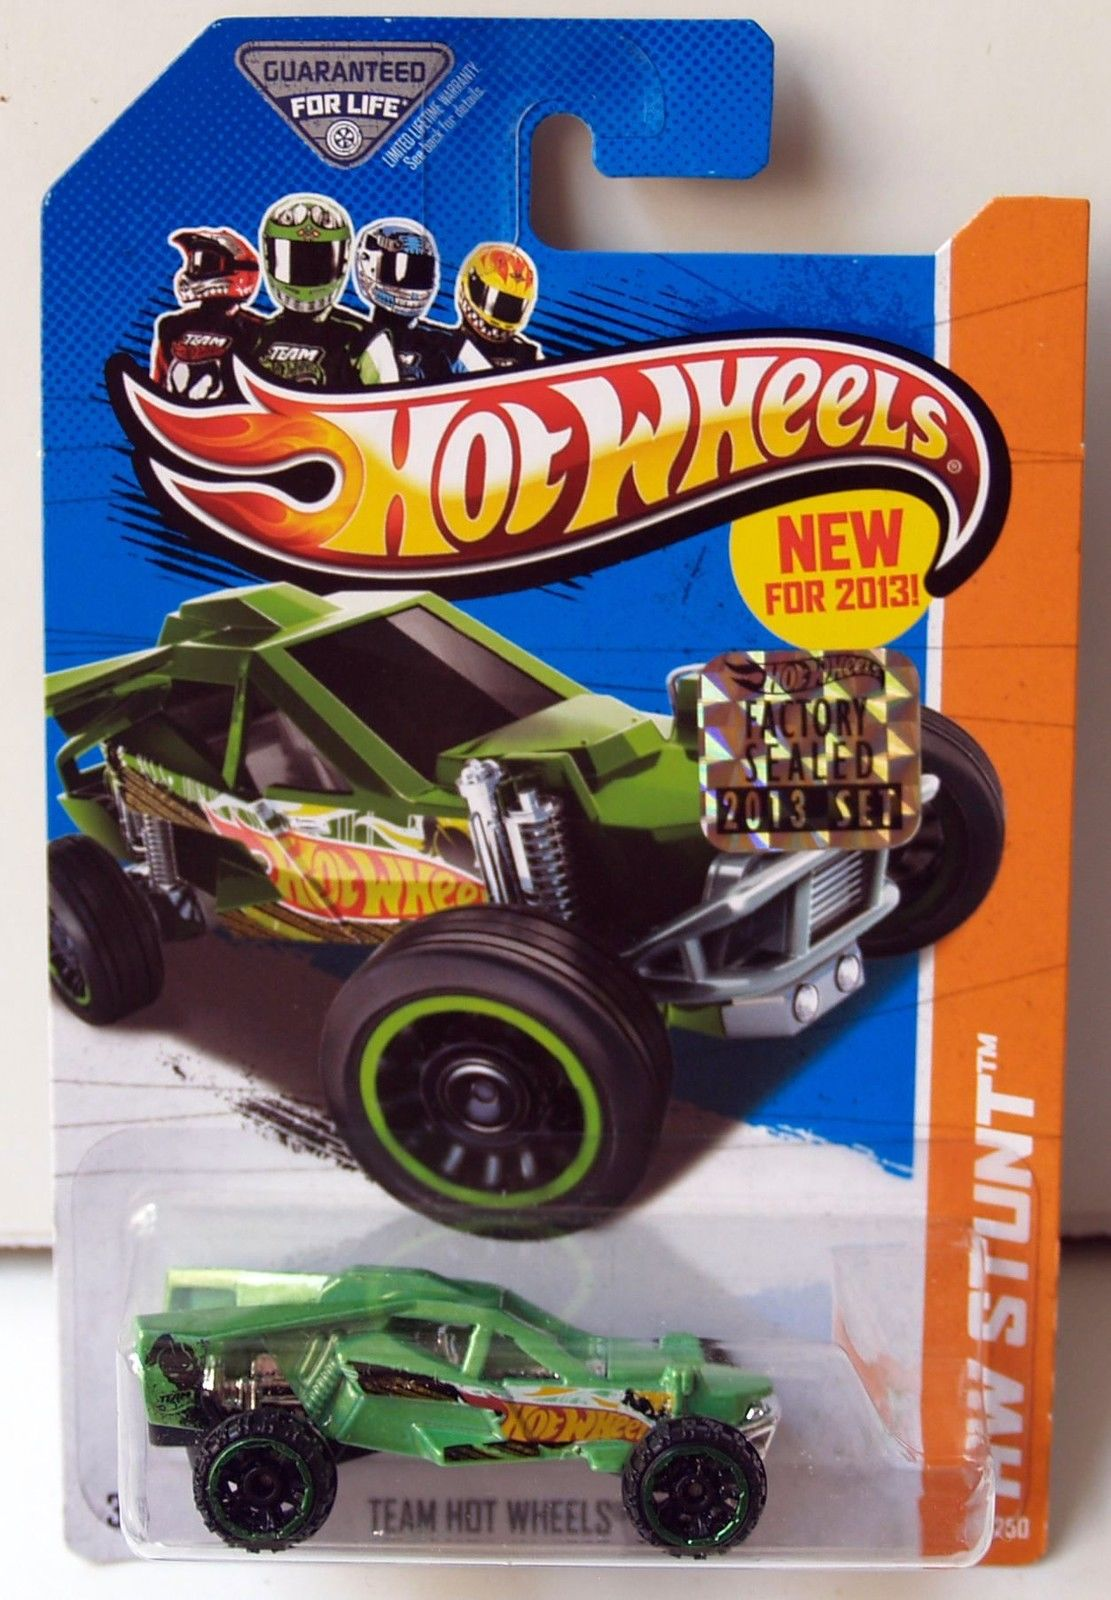 HOT WHEELS 2013 HW STUNT ROAD RALLY TEAM HOT WHEELS BUGGY GREEN FACTORY SEALED